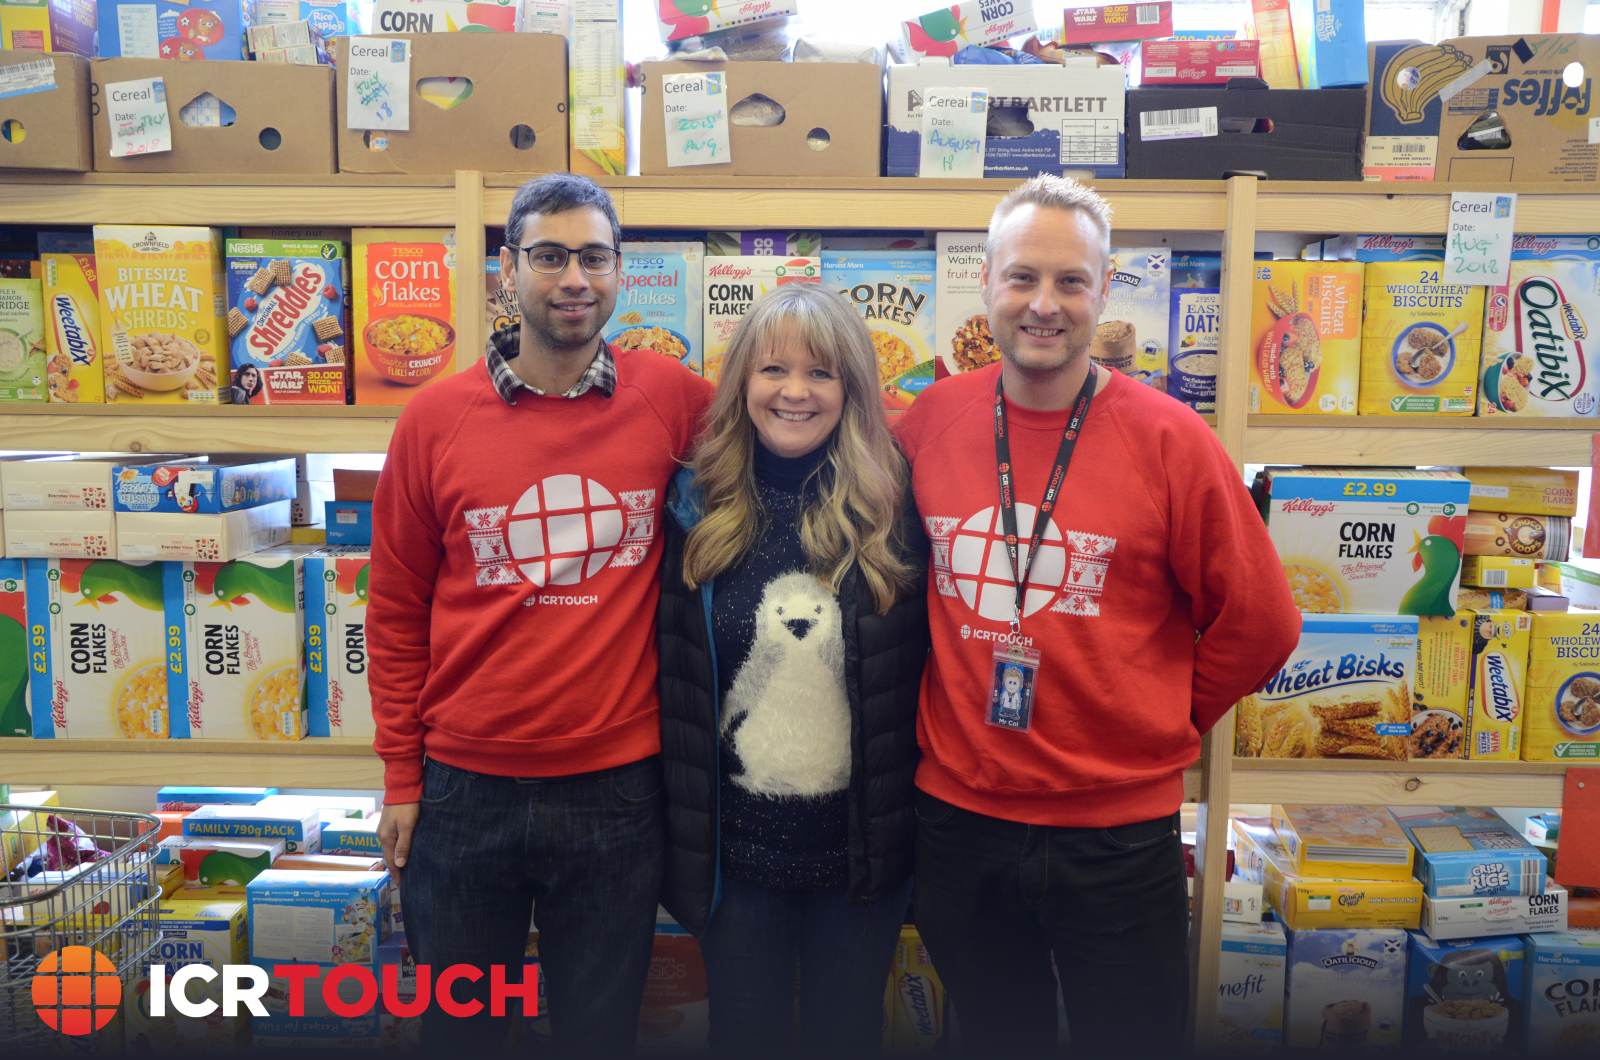 ICRTouch visited the Isle of Wight foodbank